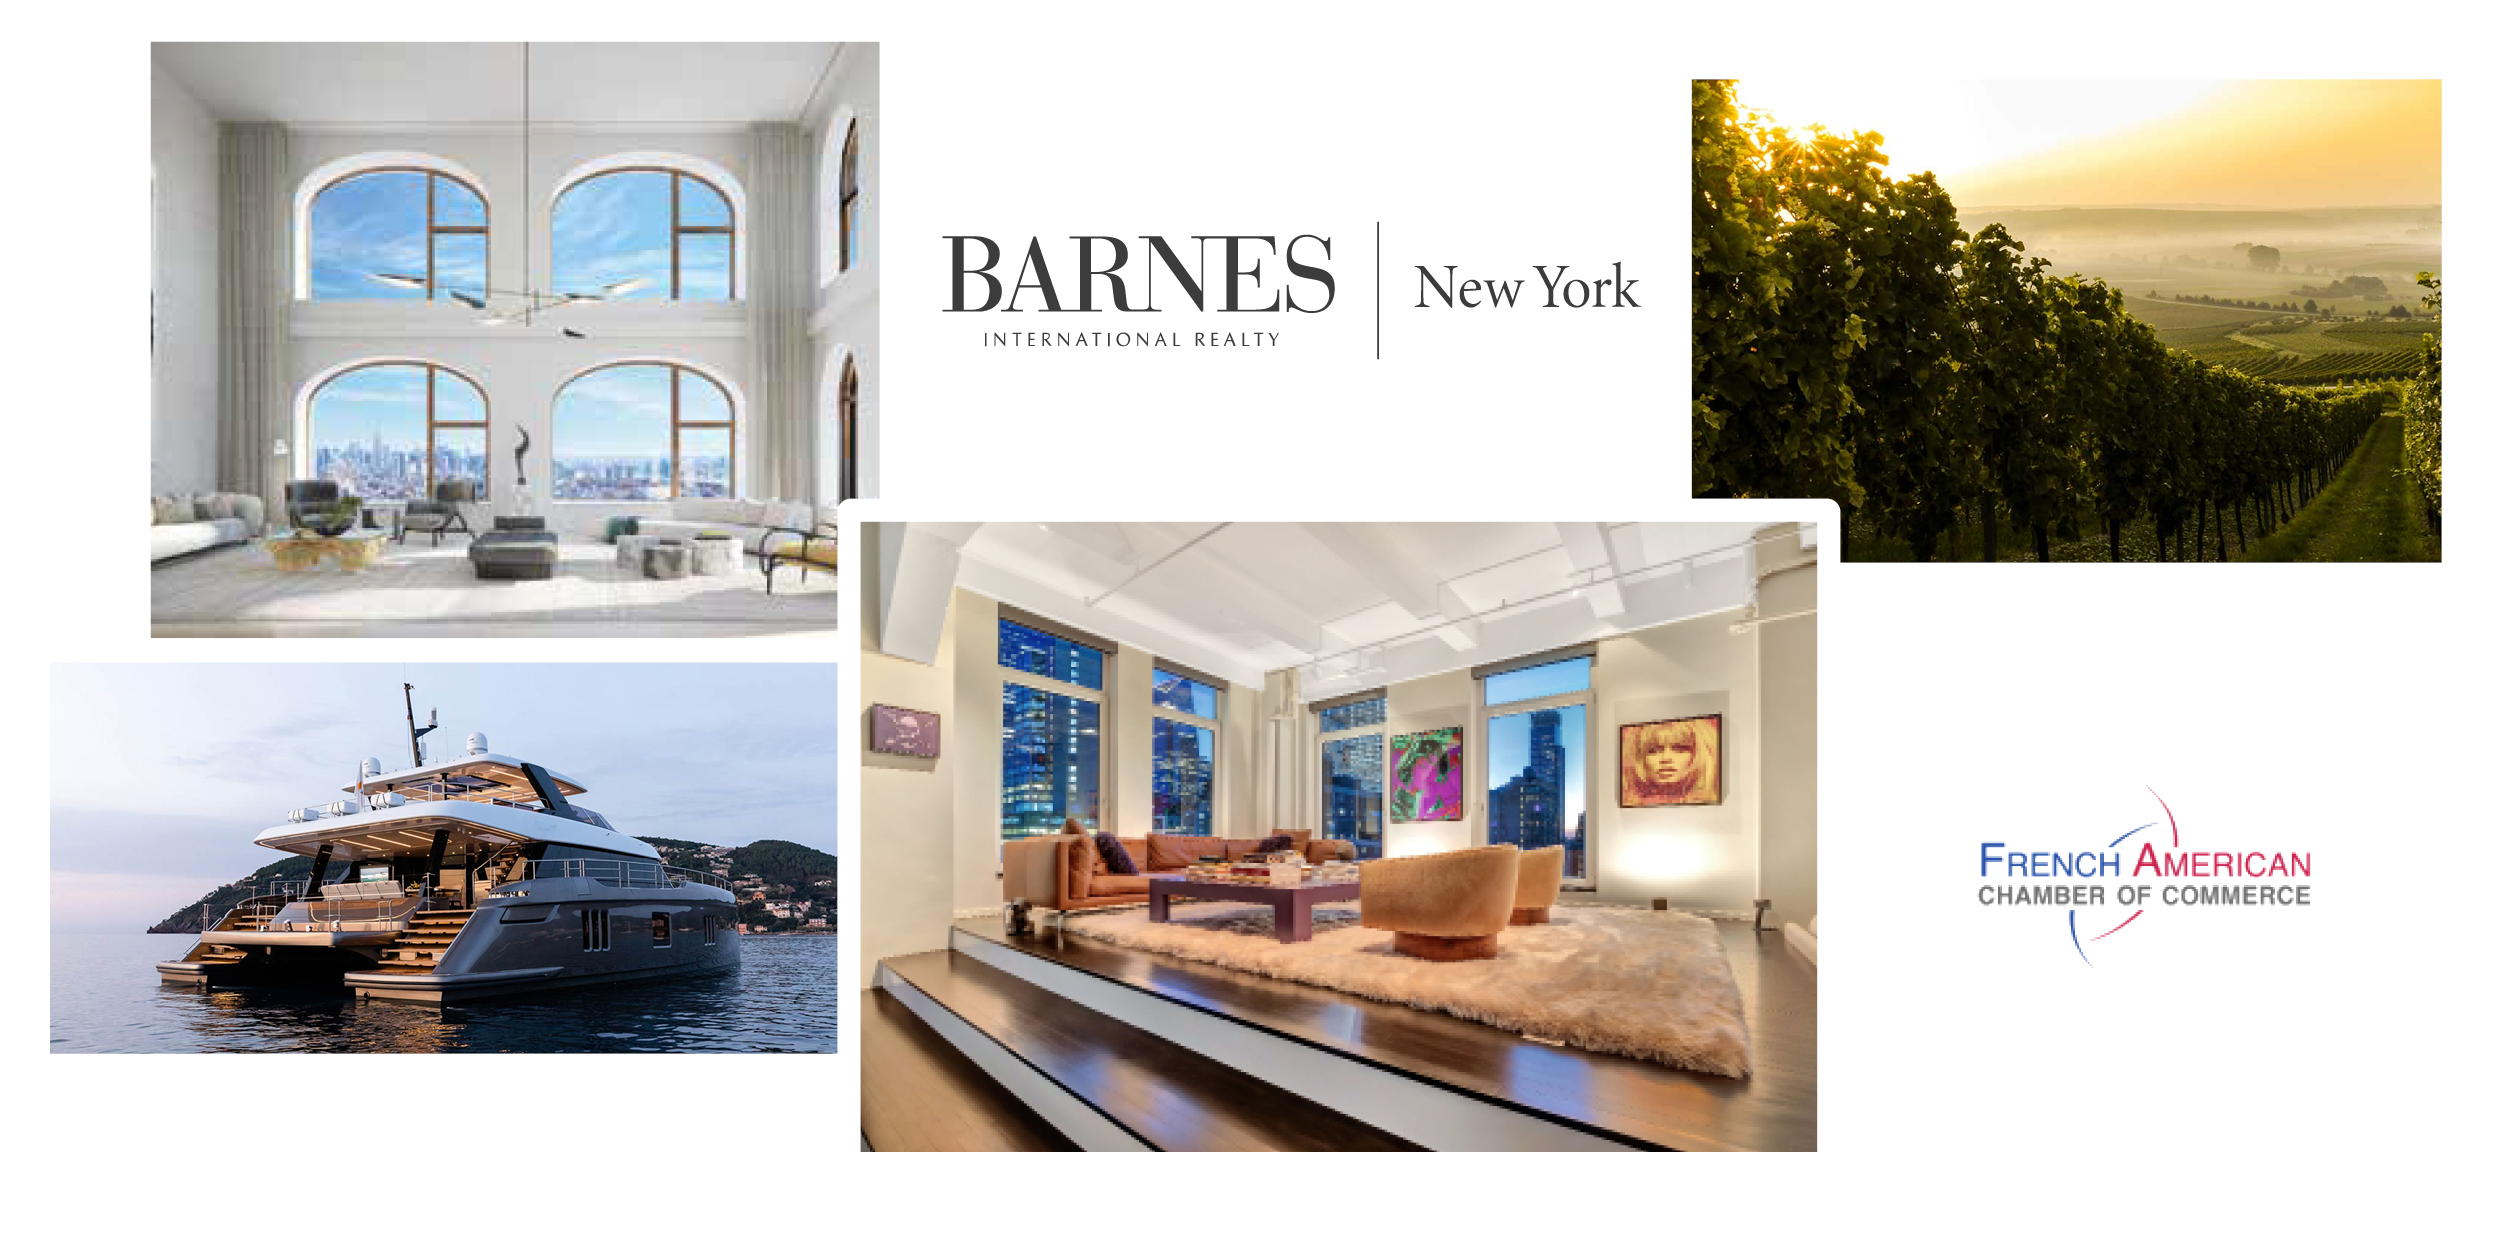 Meet the Member: Yann Rousseau, Managing Partner, BARNES New York – the French American Chamber of Commerce